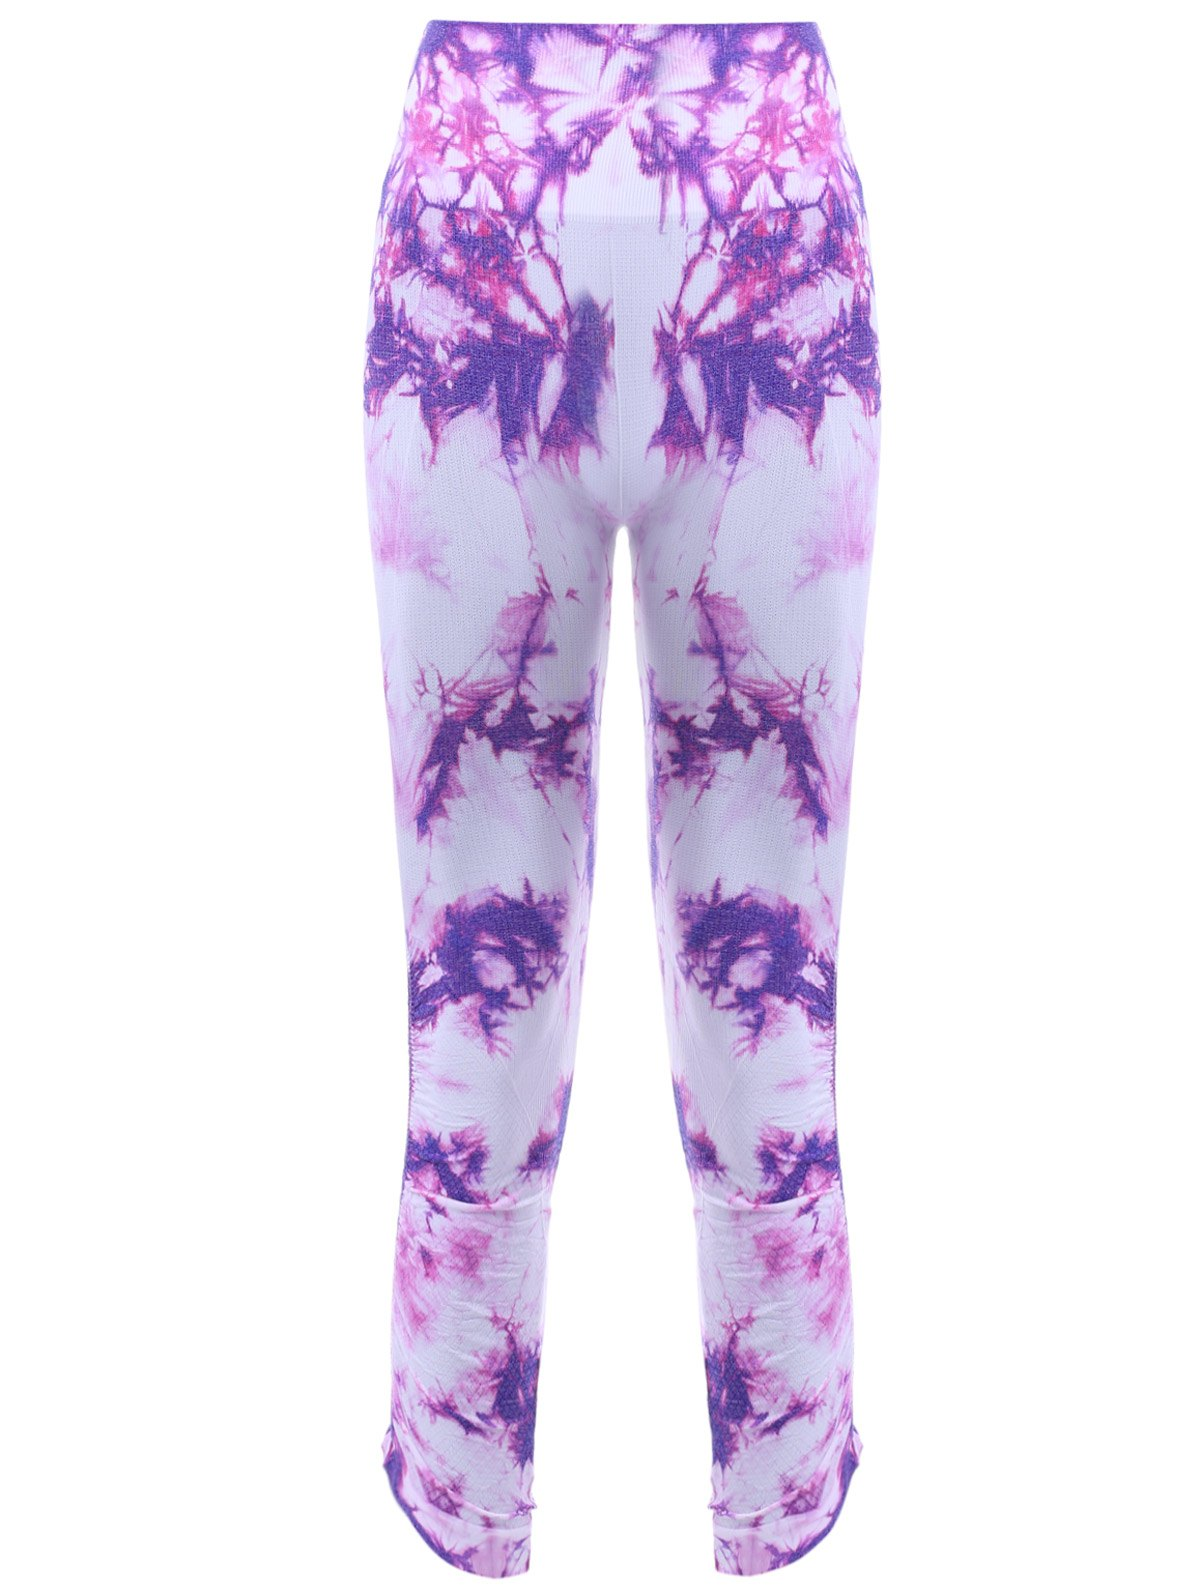 Sports Elastic Waist Tie Dyed Cropped Leggings - PURPLE XL